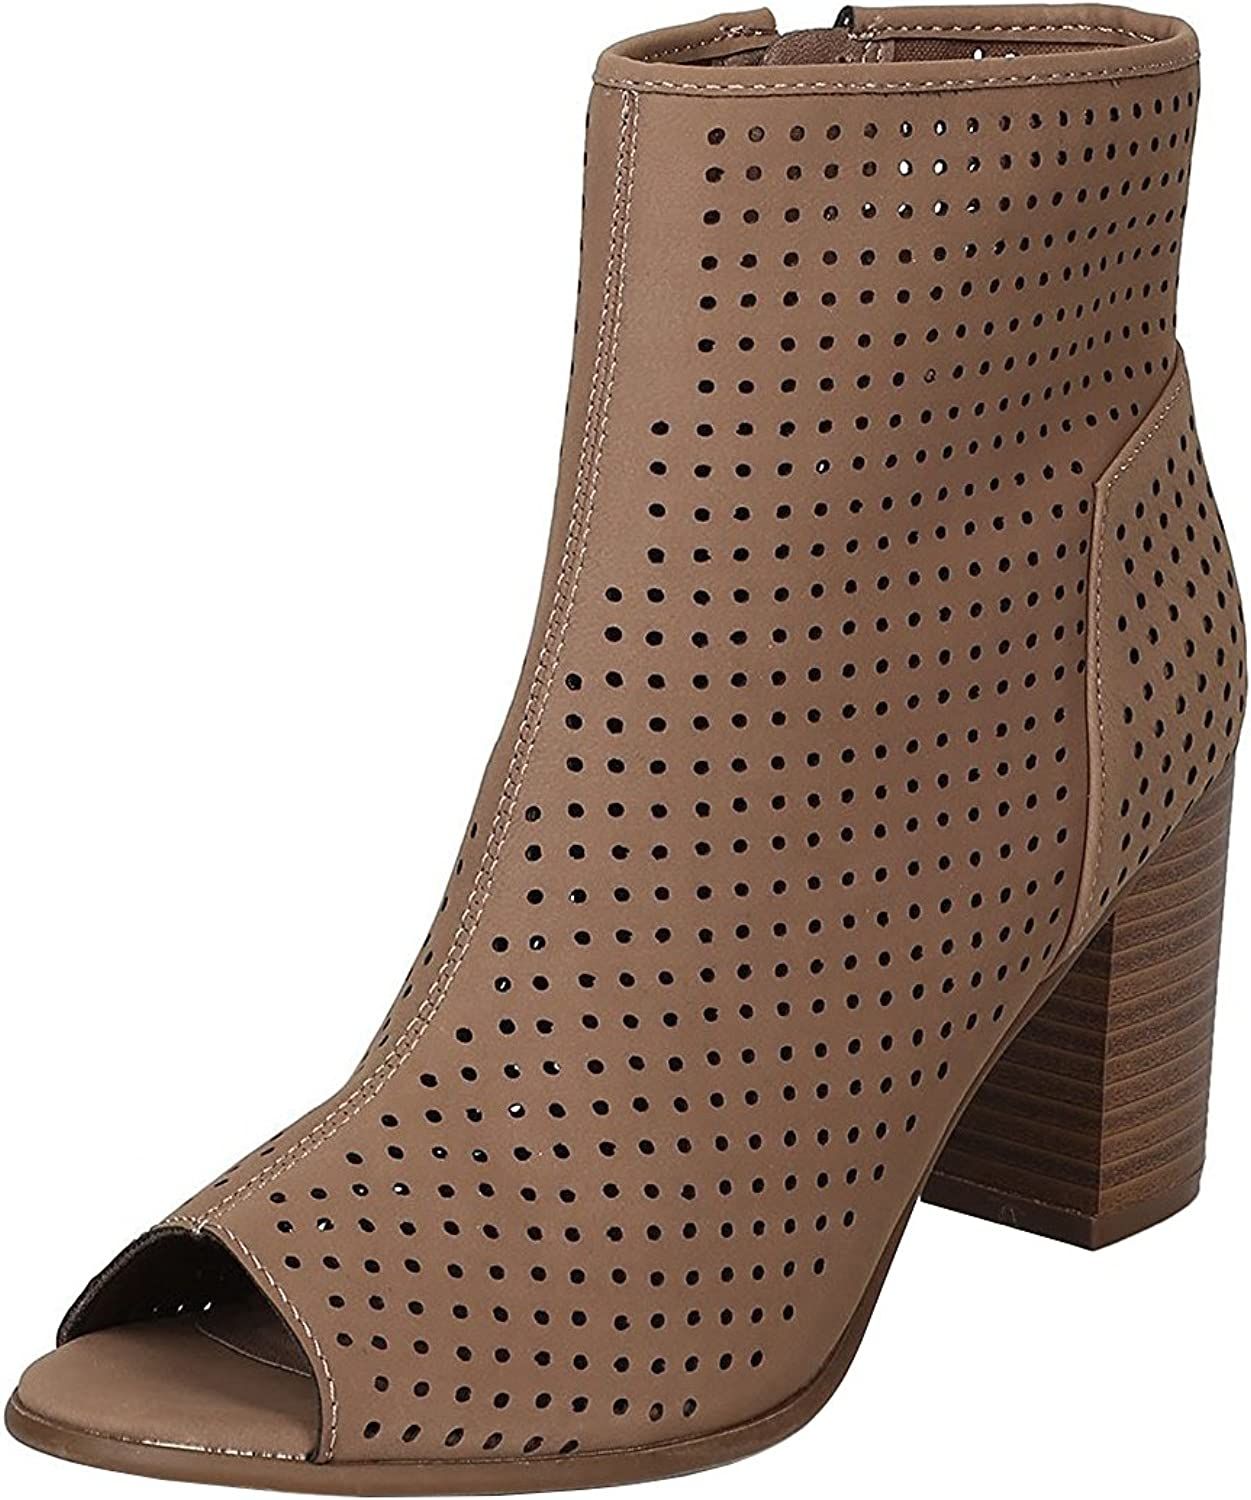 Breckelles Women's Perforated Stacked Chunky Heel Peep Toe Bootie